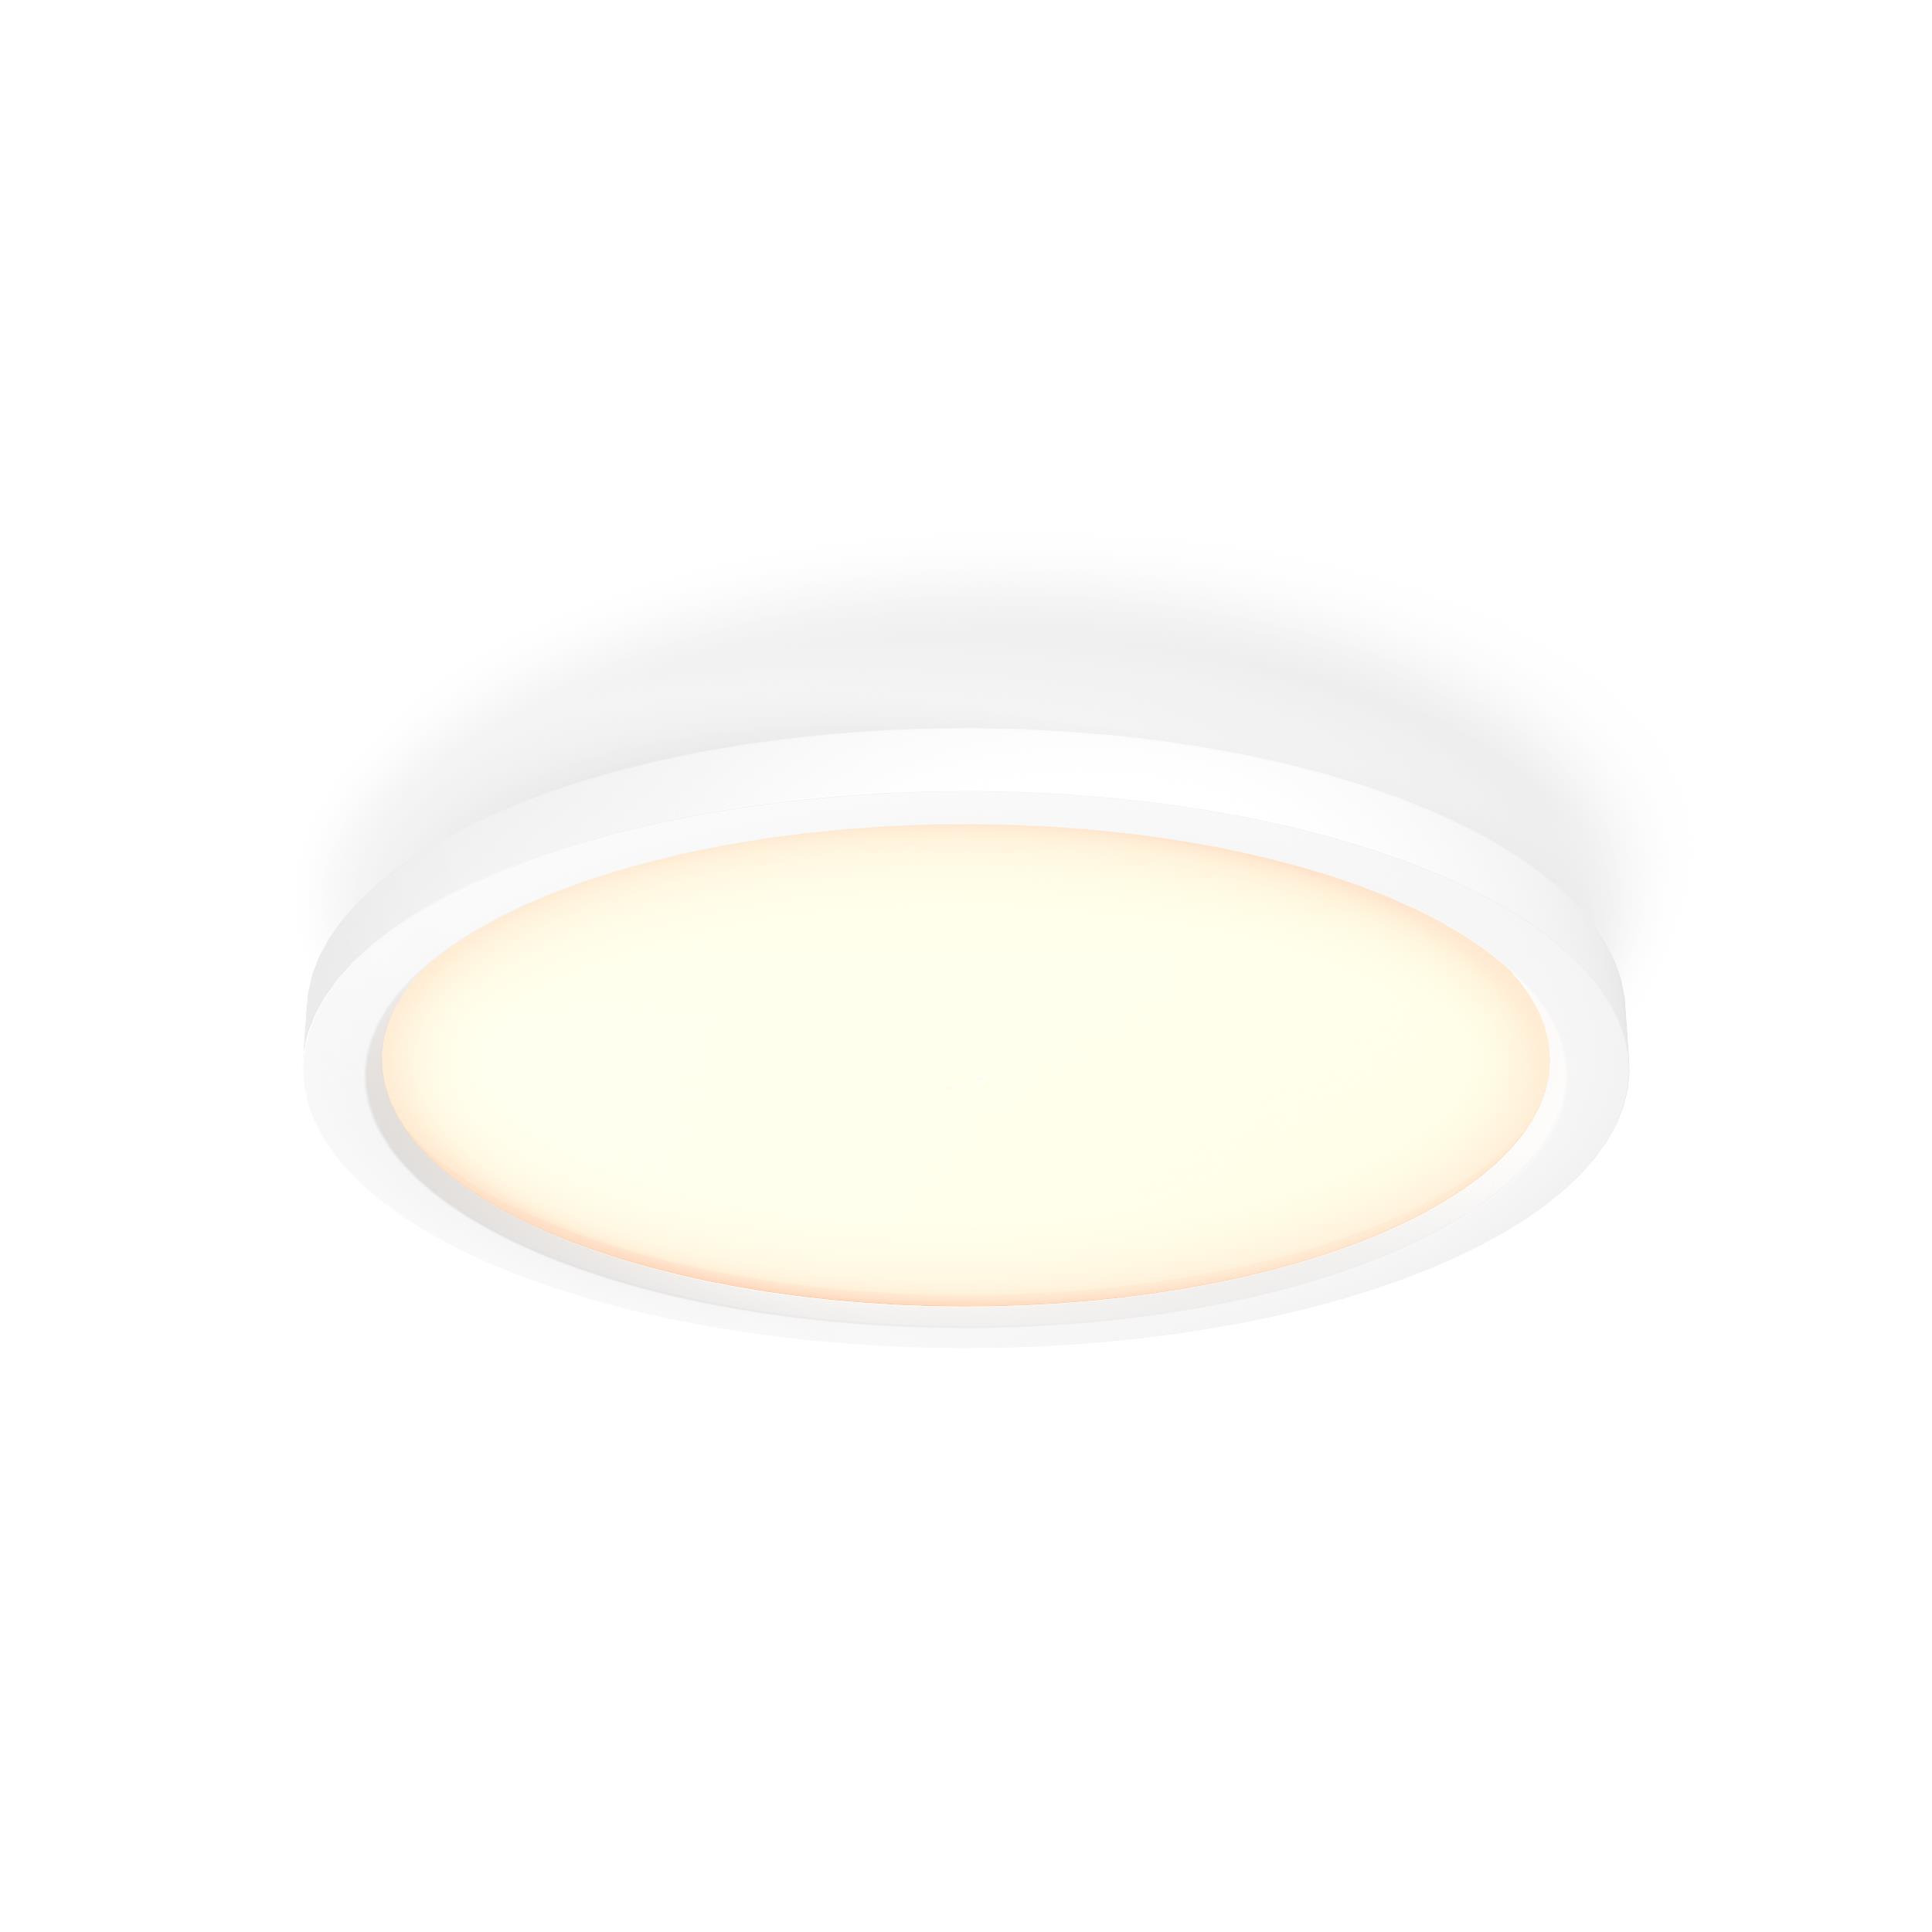 Philips Hue - Aurelle Hue Panel RD 24.5W ceiling lamp - White Ambiance - Bluetooth Dimmer Included